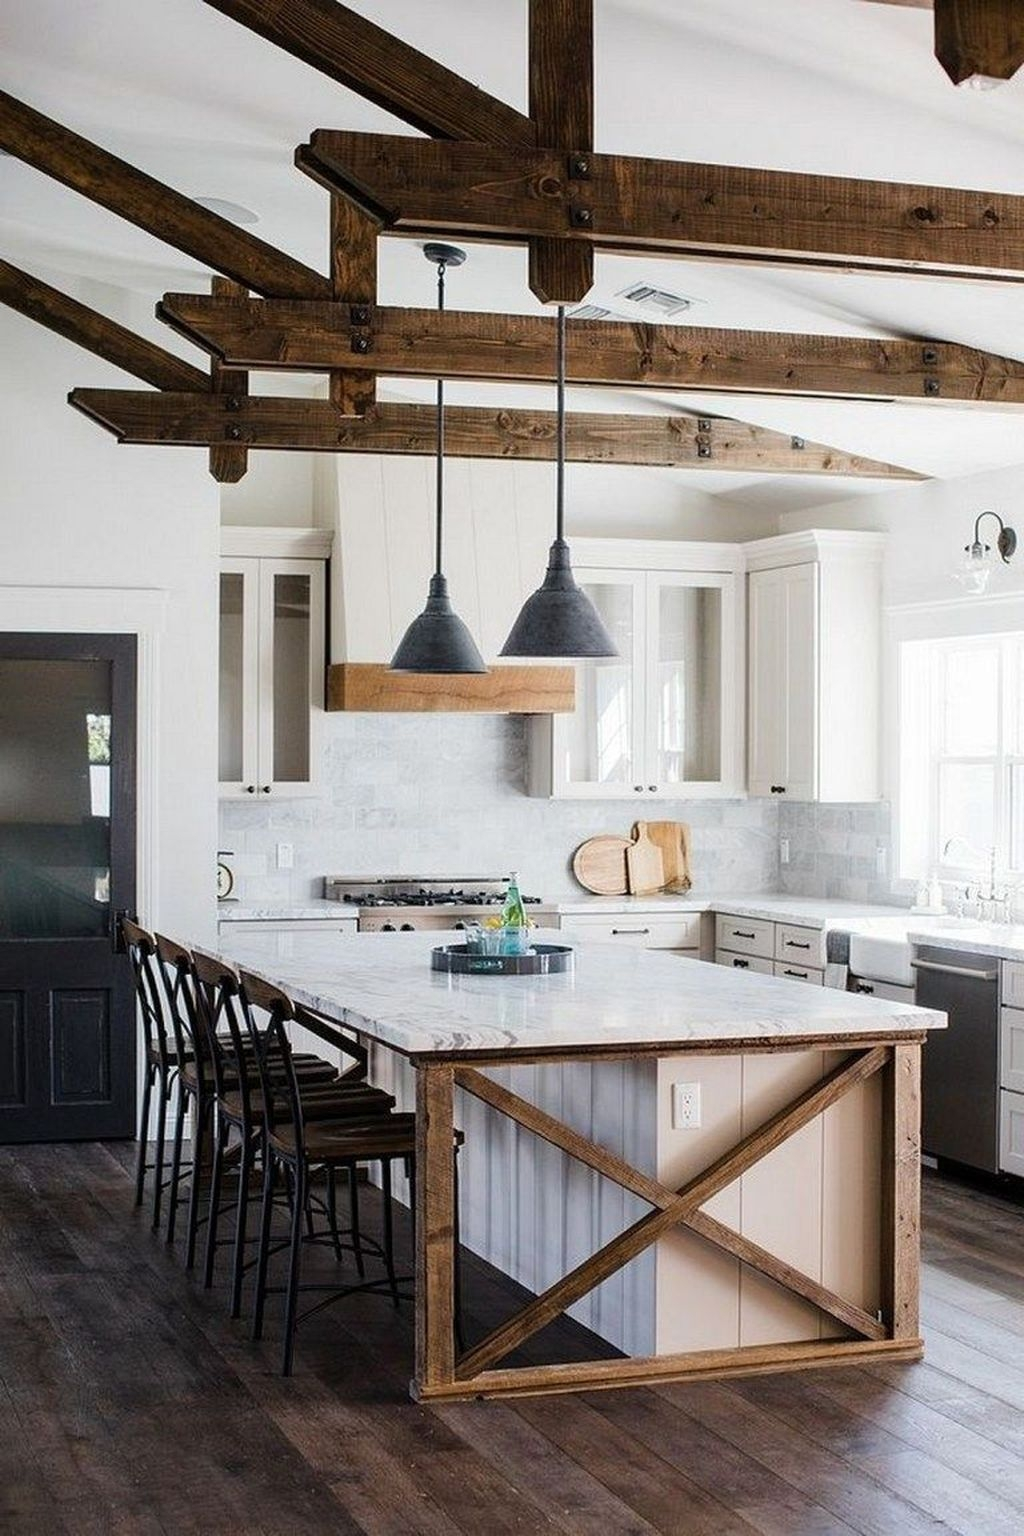 Awesome Rustic Kitchen Island Design Ideas 31